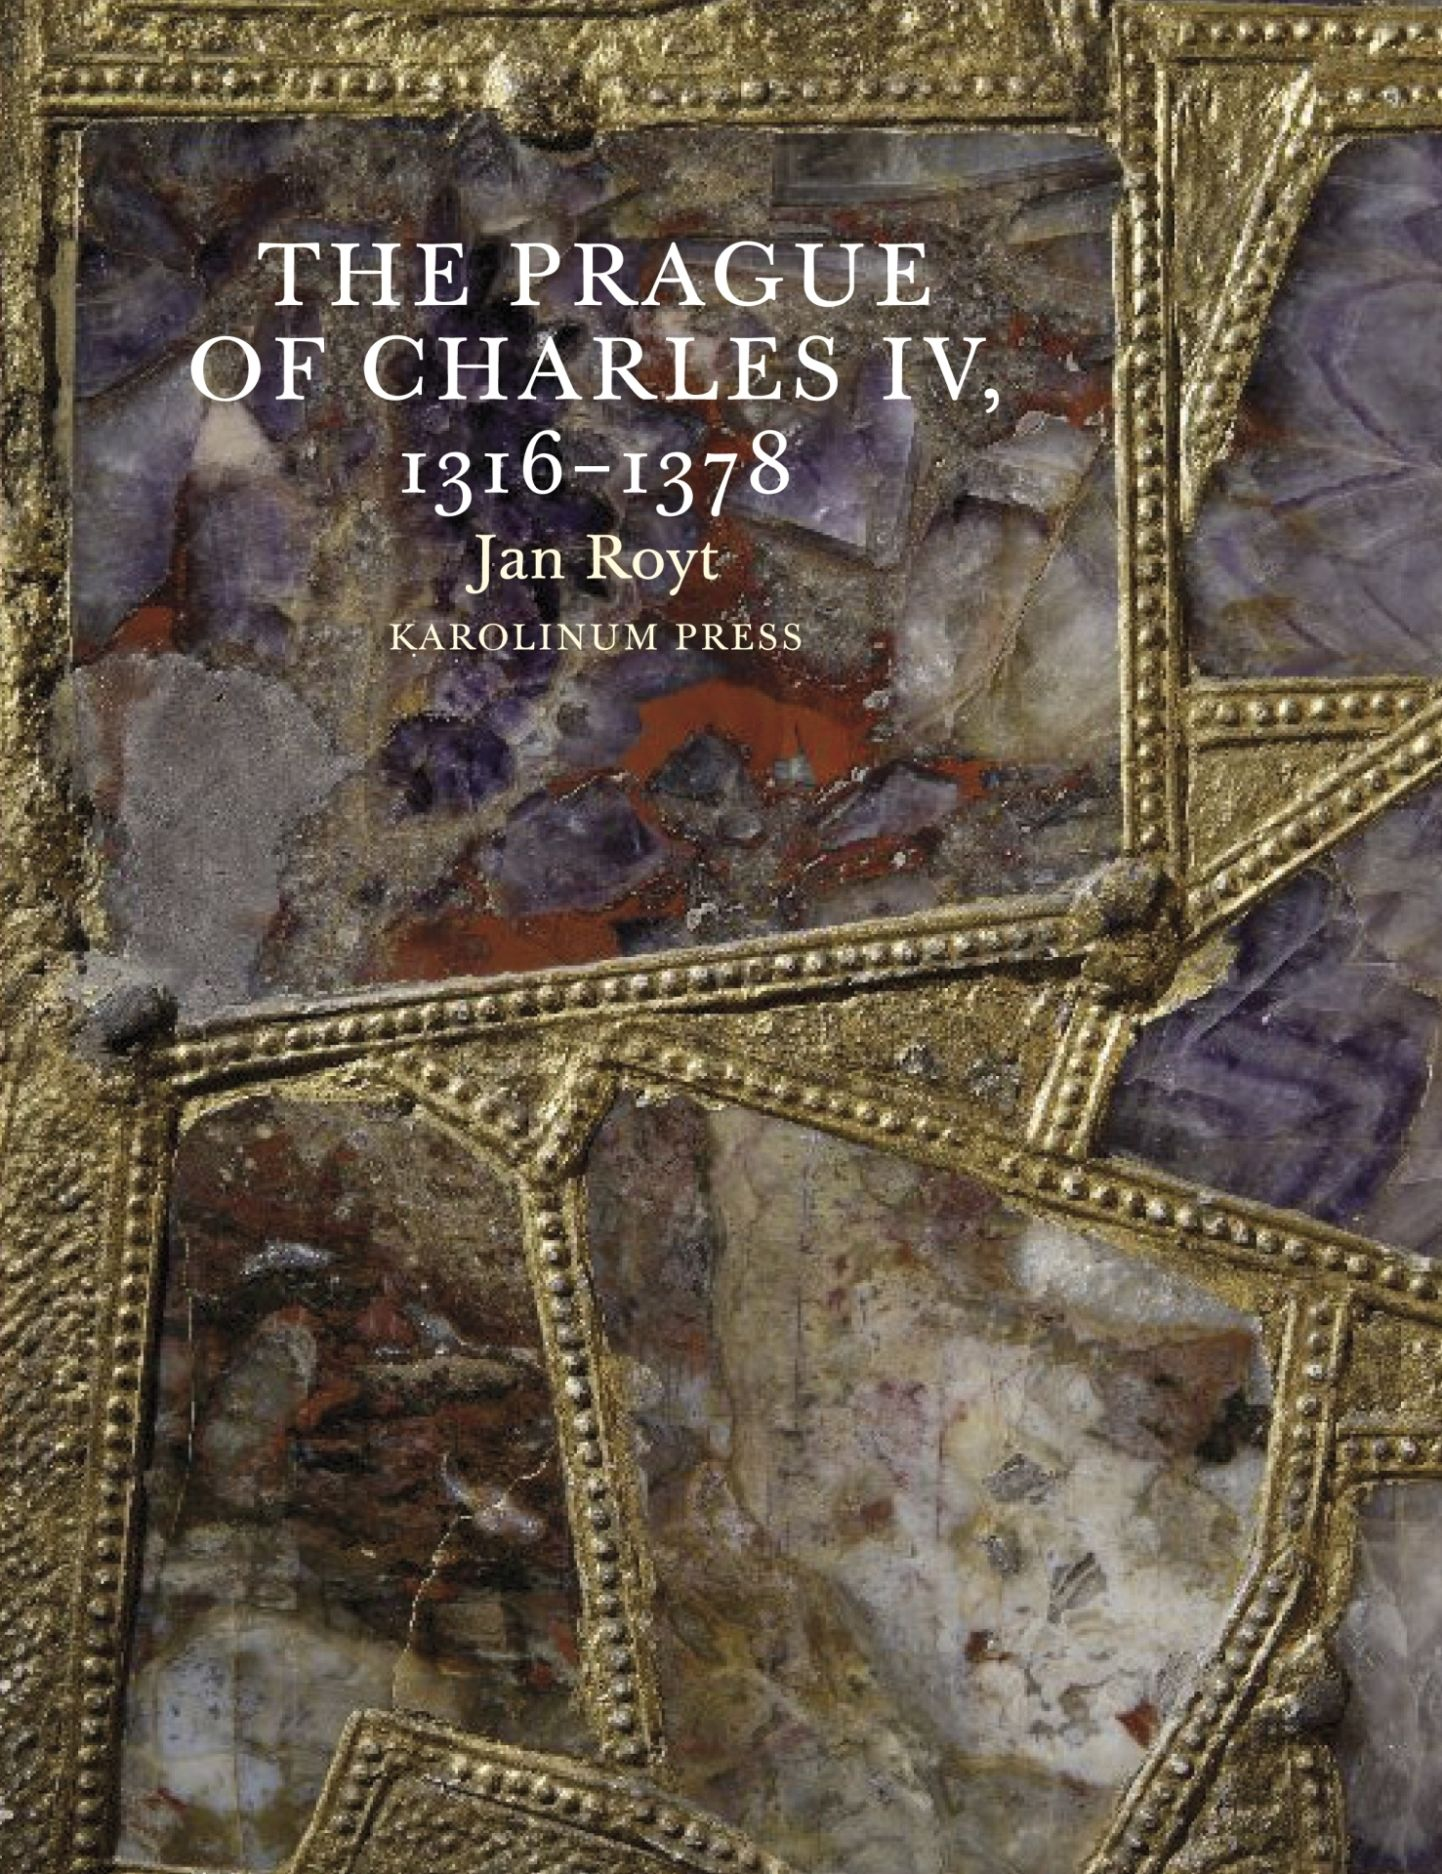 The Prague of Charles IV, 1316 - 1378